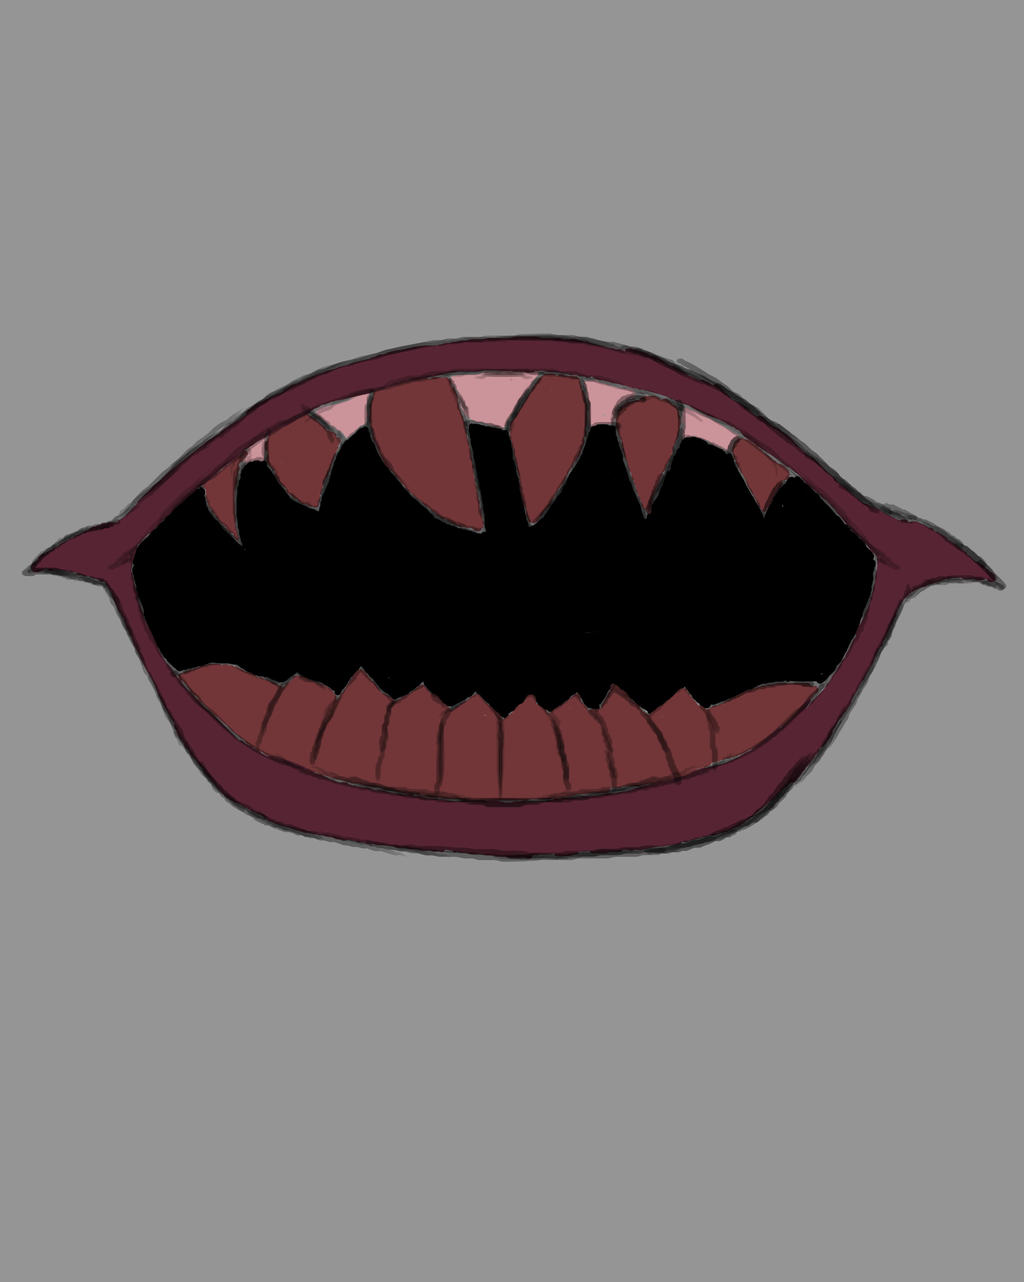 IT Mouth Daily sketch #714 by GothicVampireFreak